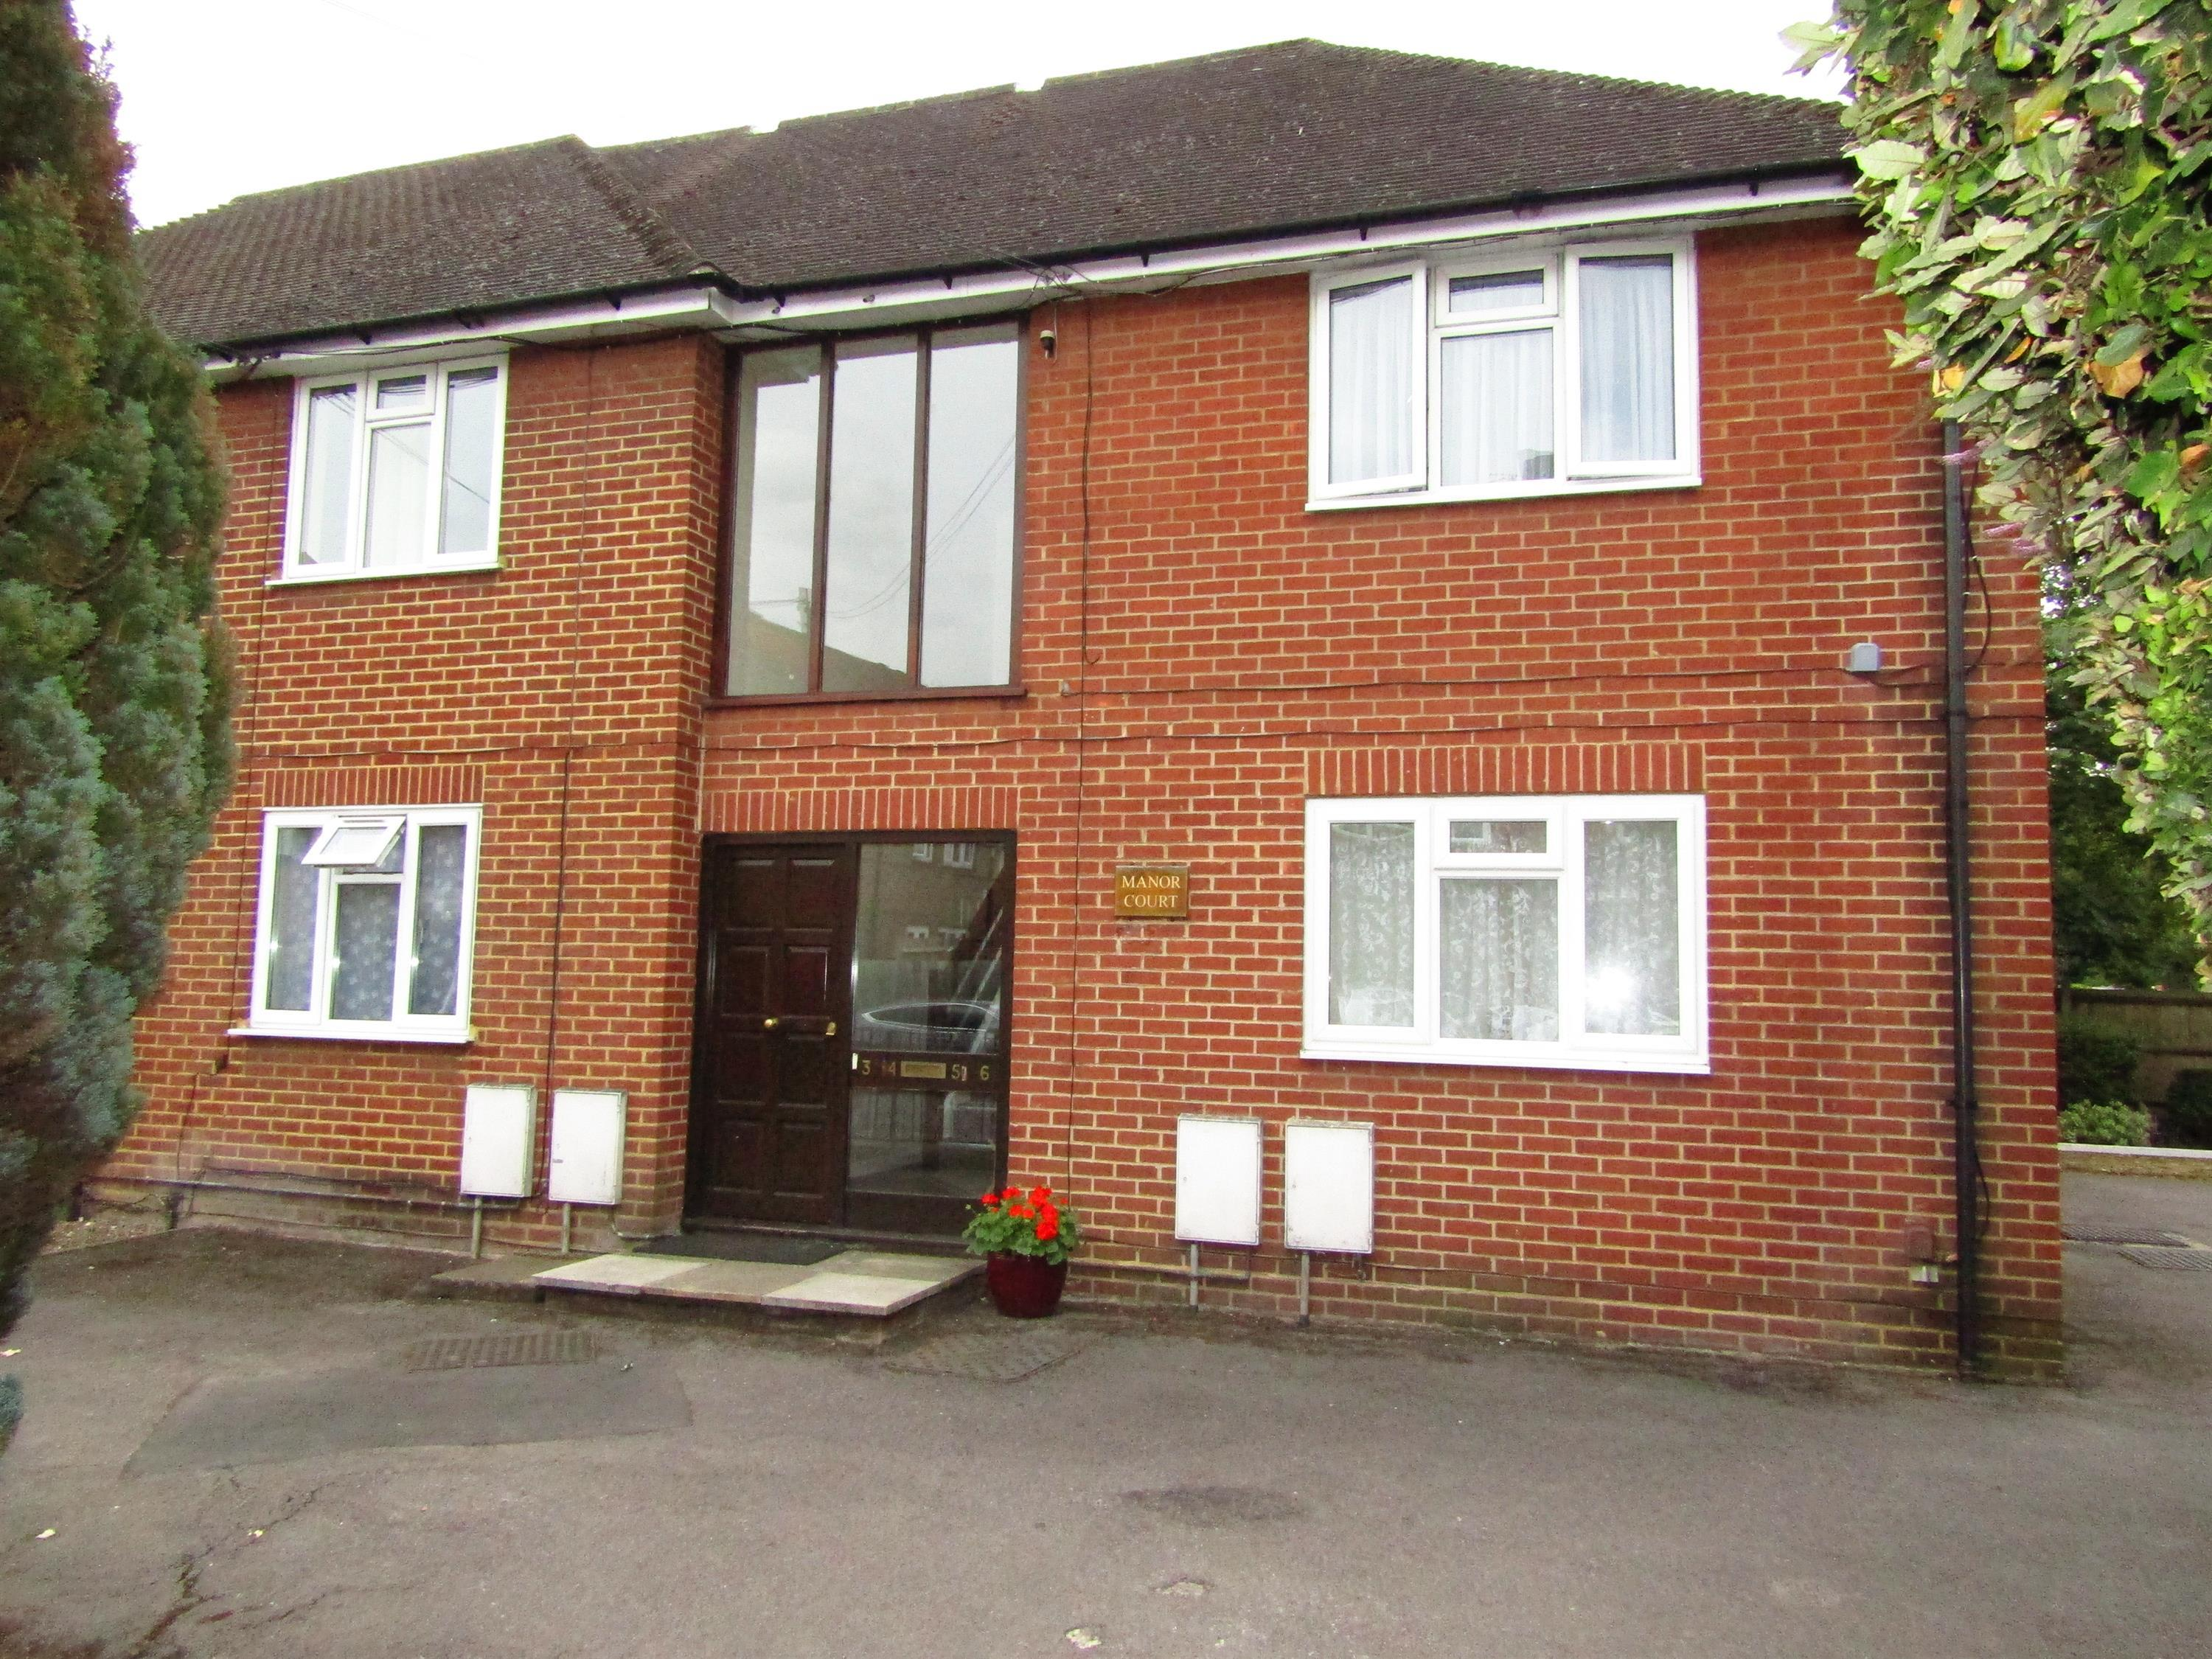 Manor Court, Albert Street, Slough SL1 2AY